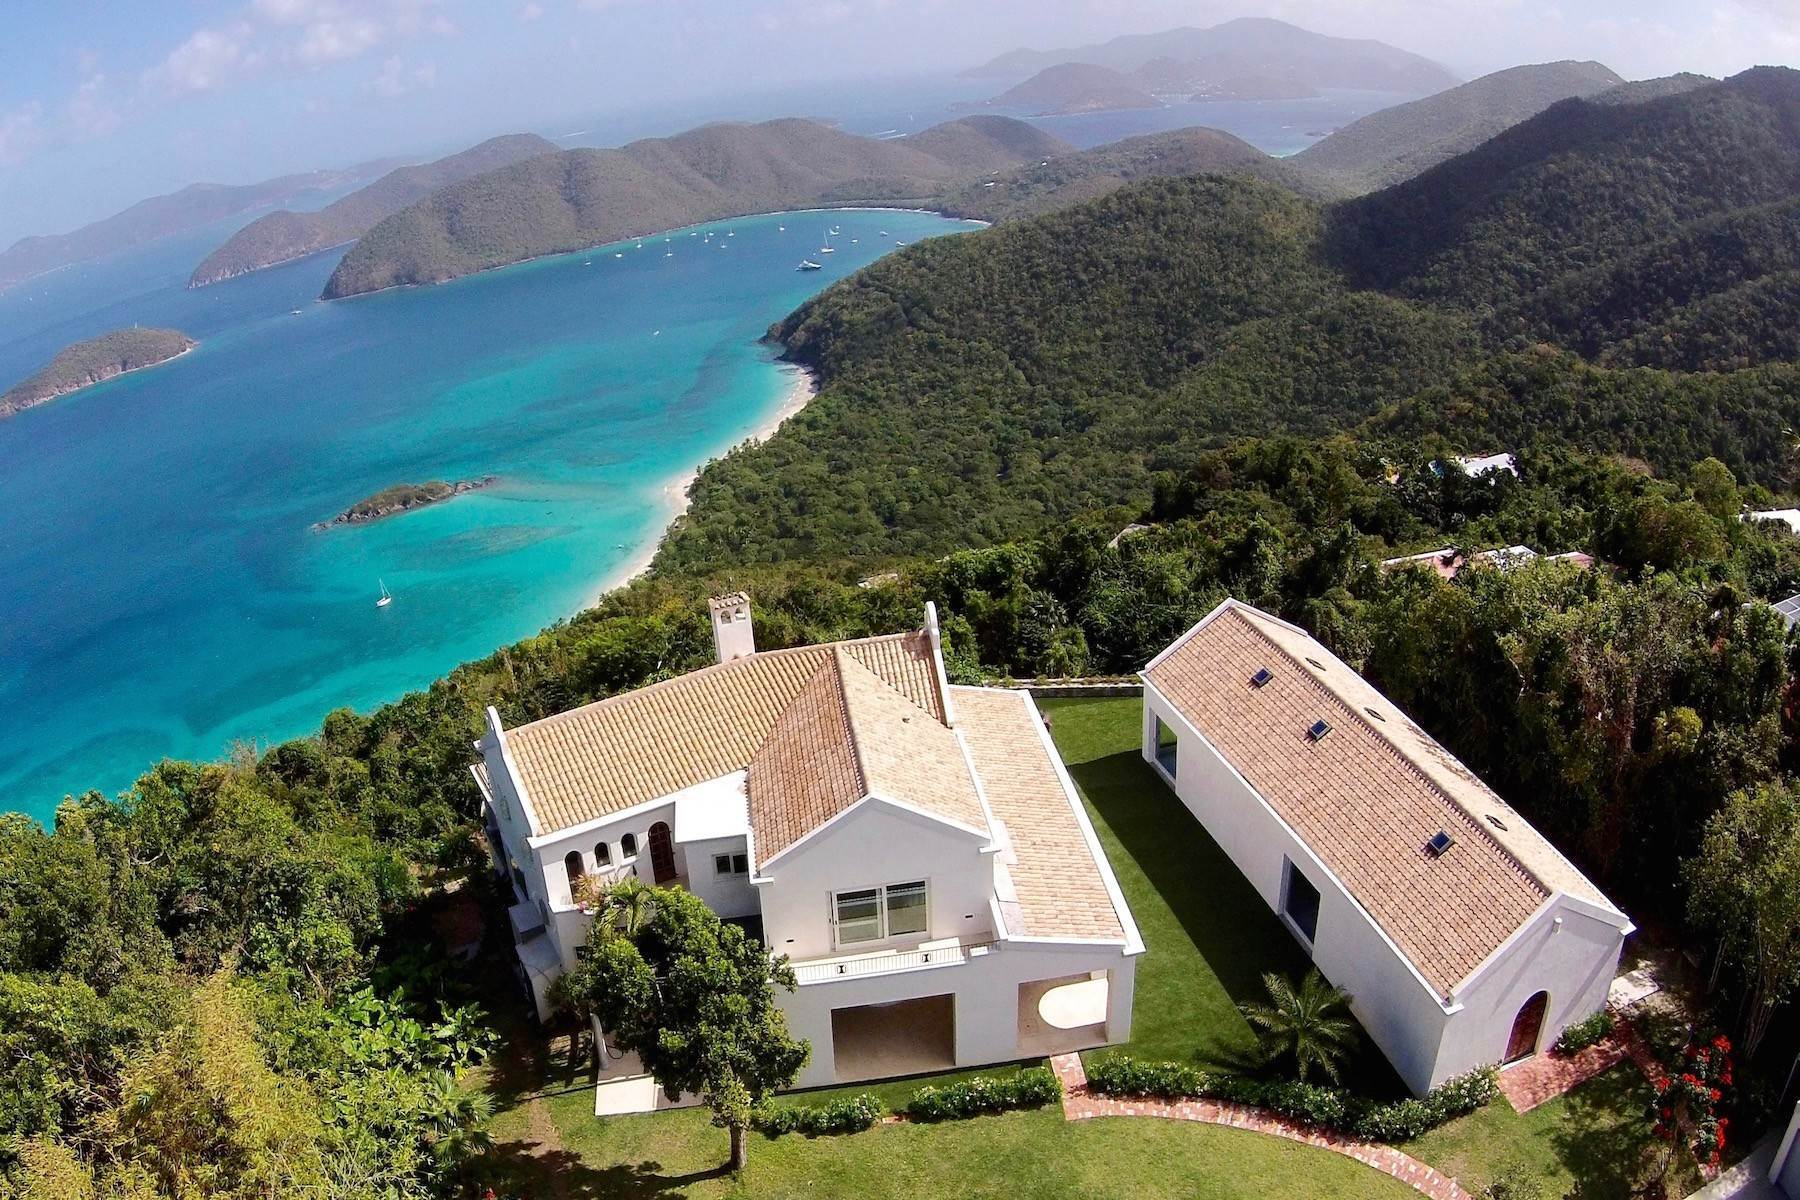 Single Family Homes pour l Vente à Le Chateau 3-1 Catherineberg St John, Virgin Islands 00830 Isles Vierges Américaines